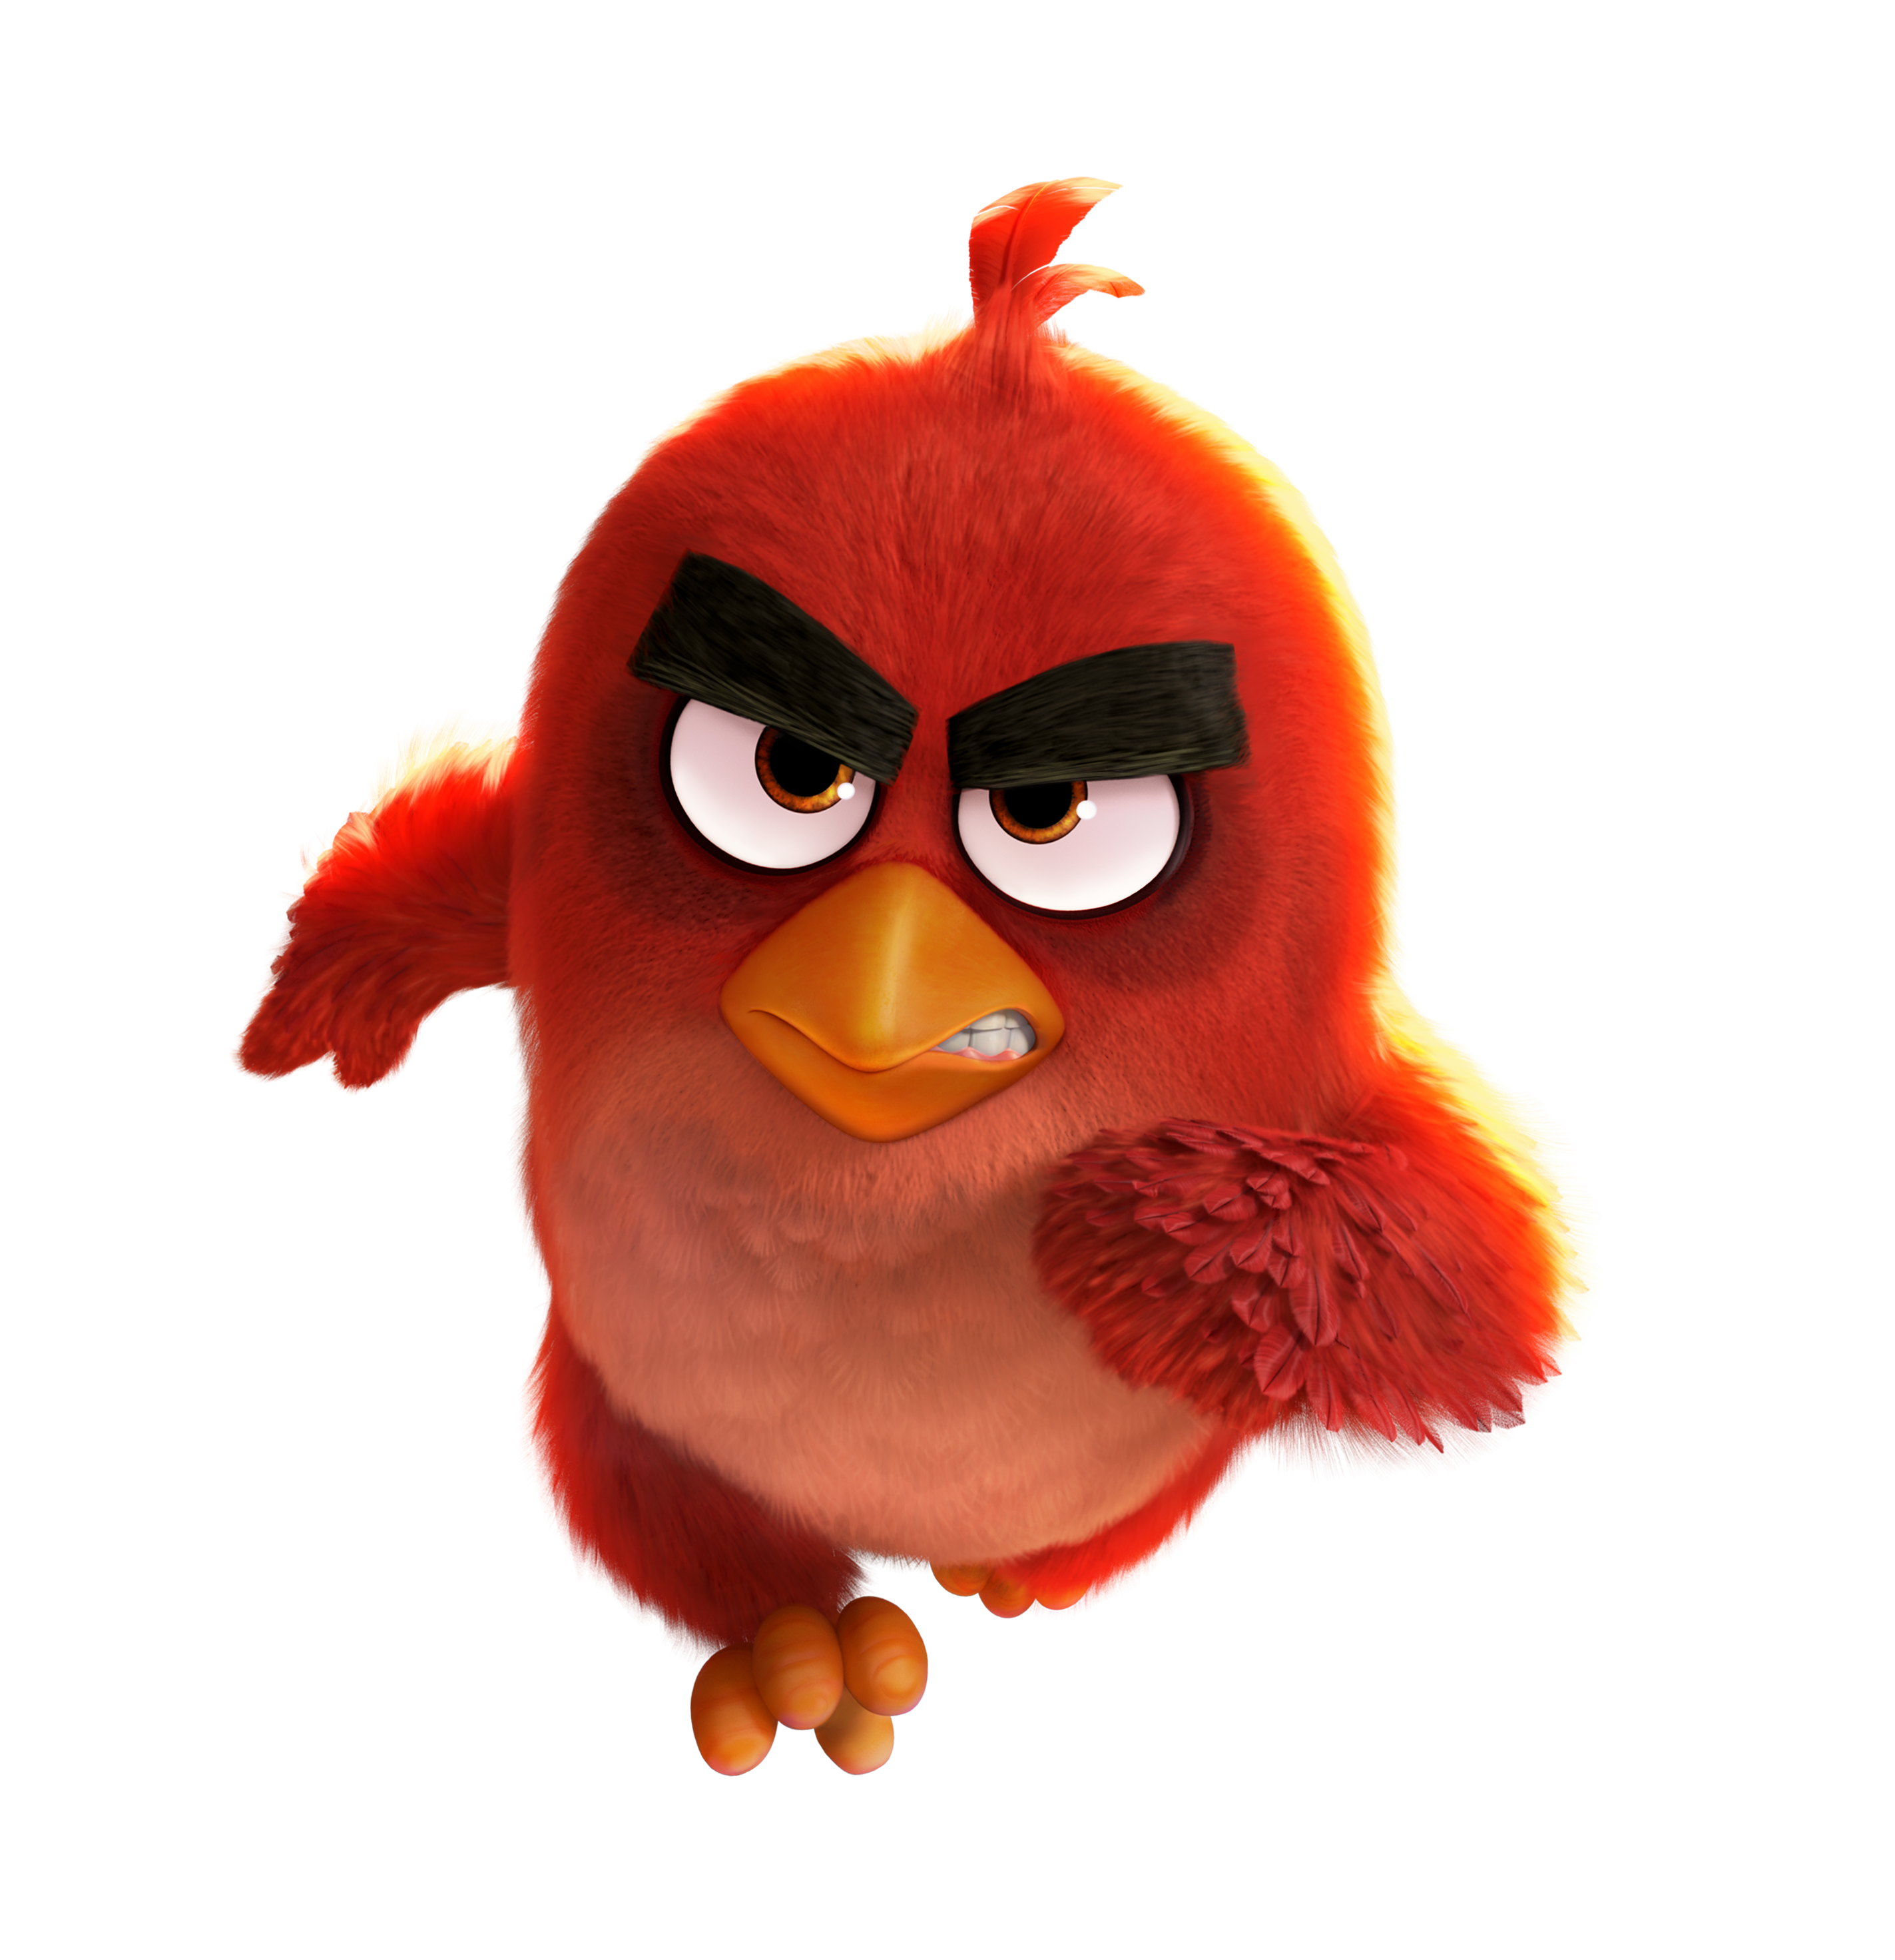 Angry birds red png. The movie transparent image